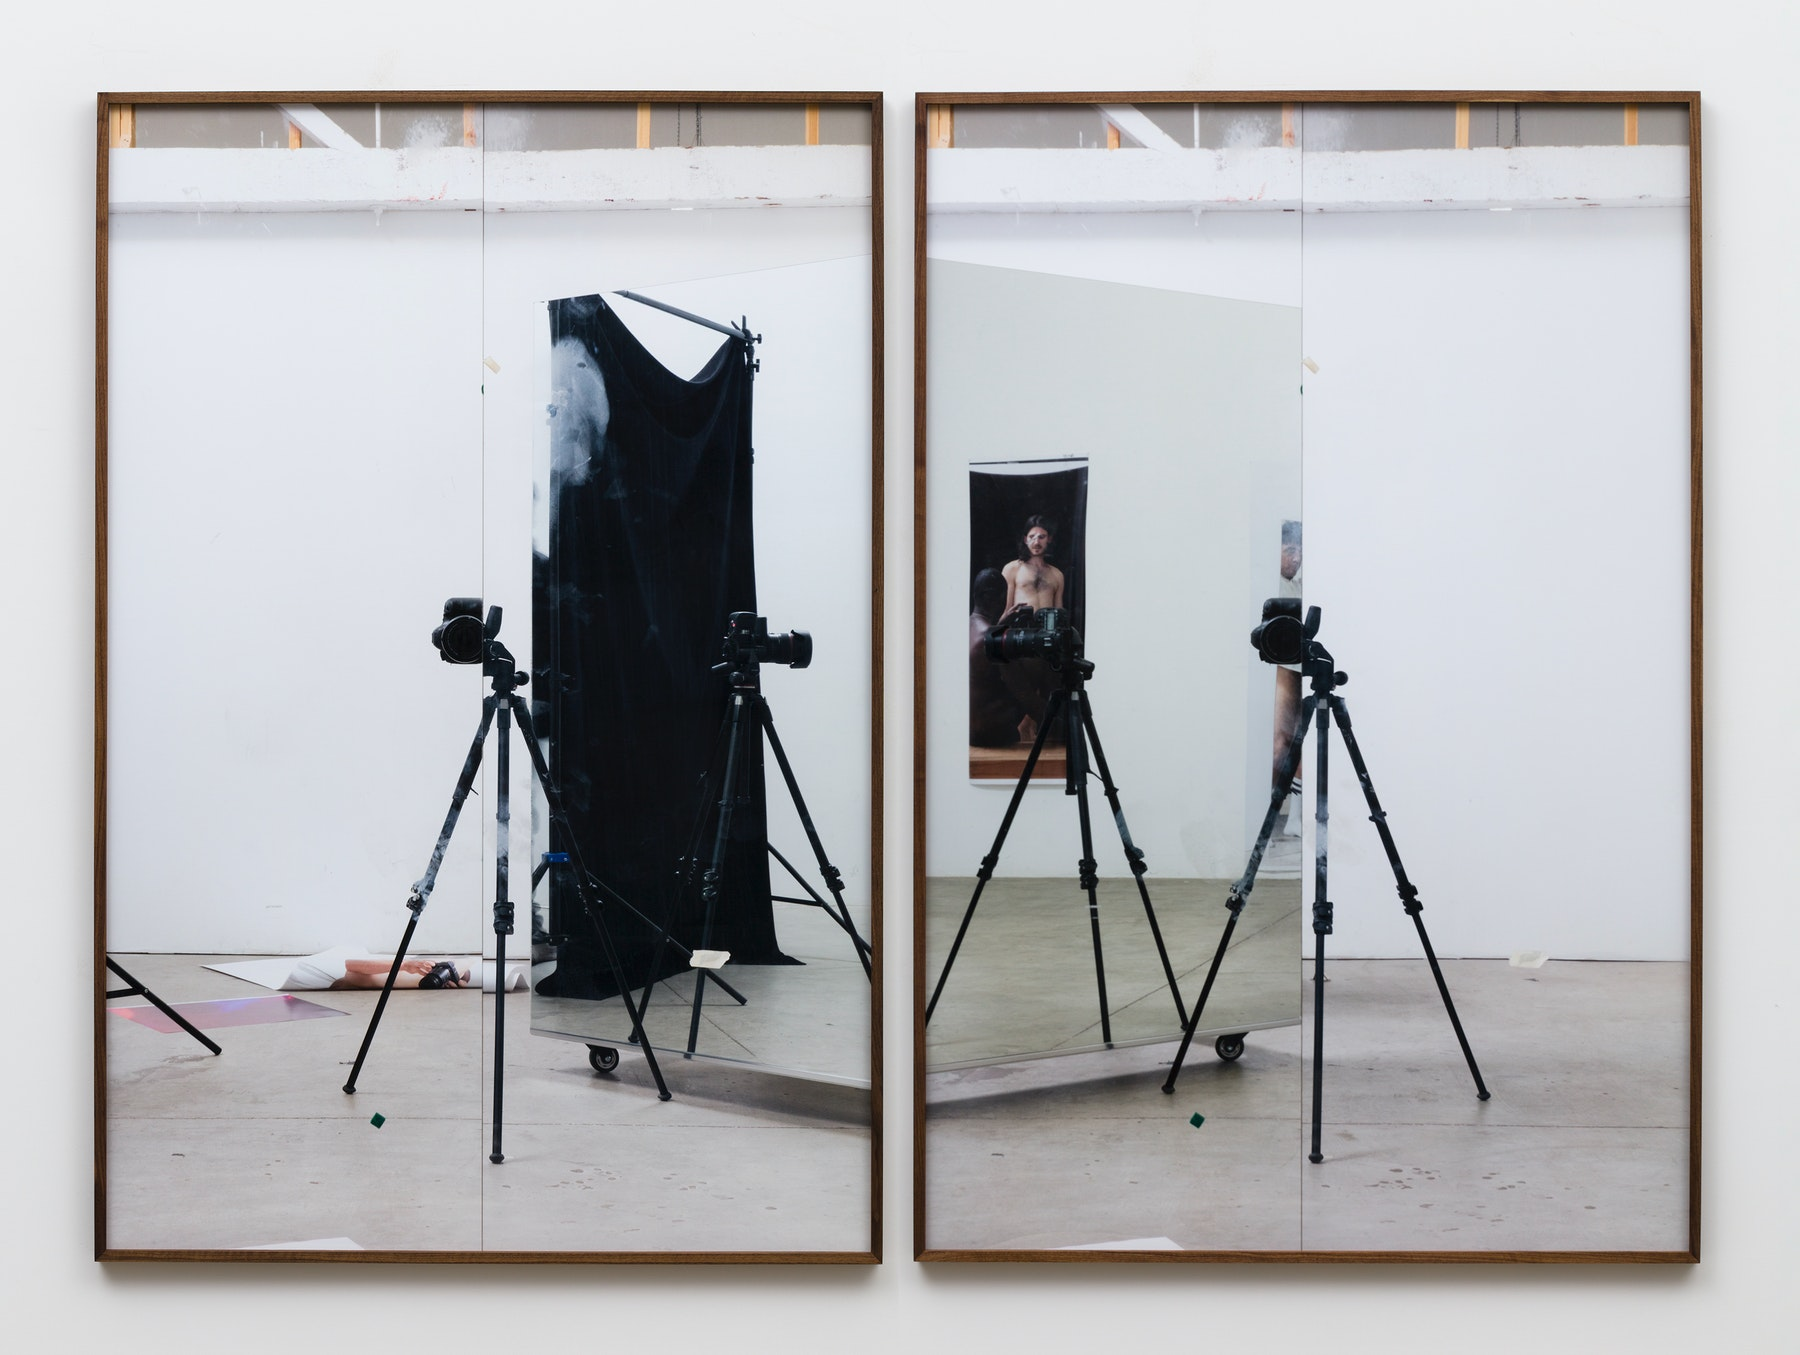 """Paul Mpagi Sepuya """"Studio (0X5A5006, 0X5A5007),"""" 2020 Archival pigment print Diptych, 75 x 50"""" [HxW] (190.5 x 127 cm) each print Edition of 5, 2 AP Inventory #SEP666 Courtesy of the artist and Vielmetter Los Angeles Photo credit: Jeff McLane"""